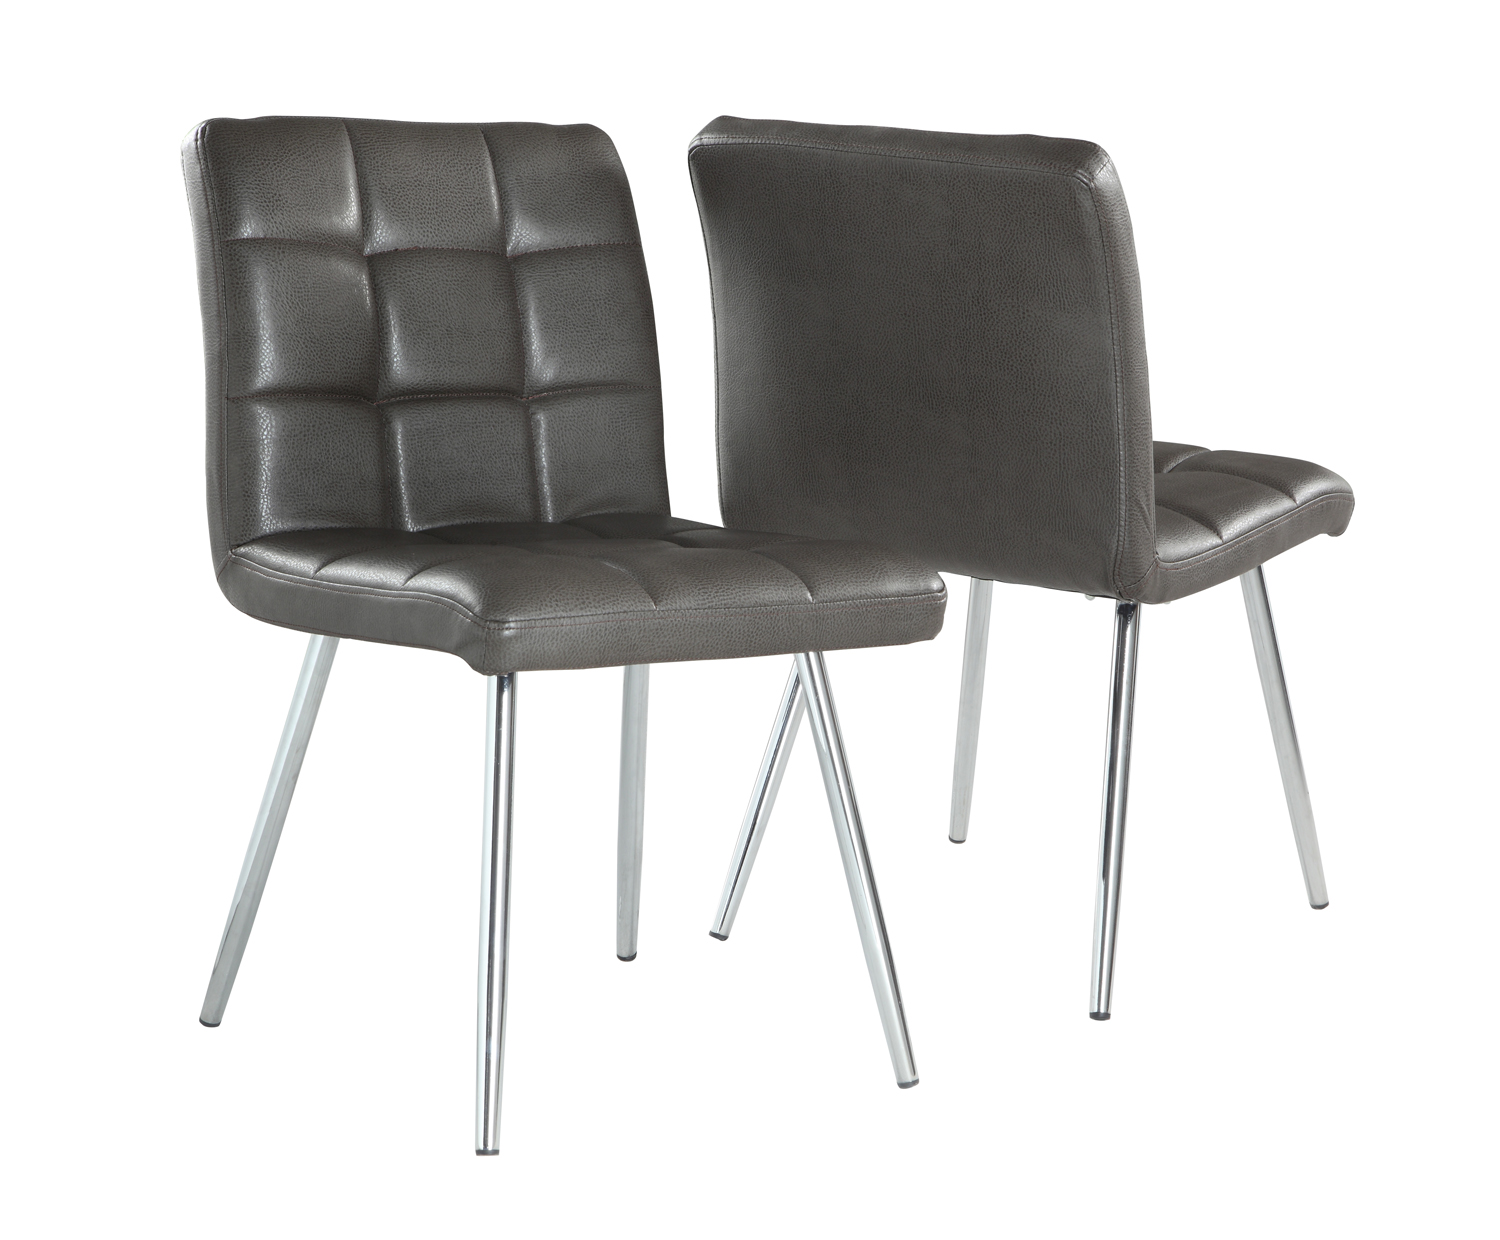 "Dining Chair - 2 Pieces / 32""H / Grey Leather-Look / Chrome"